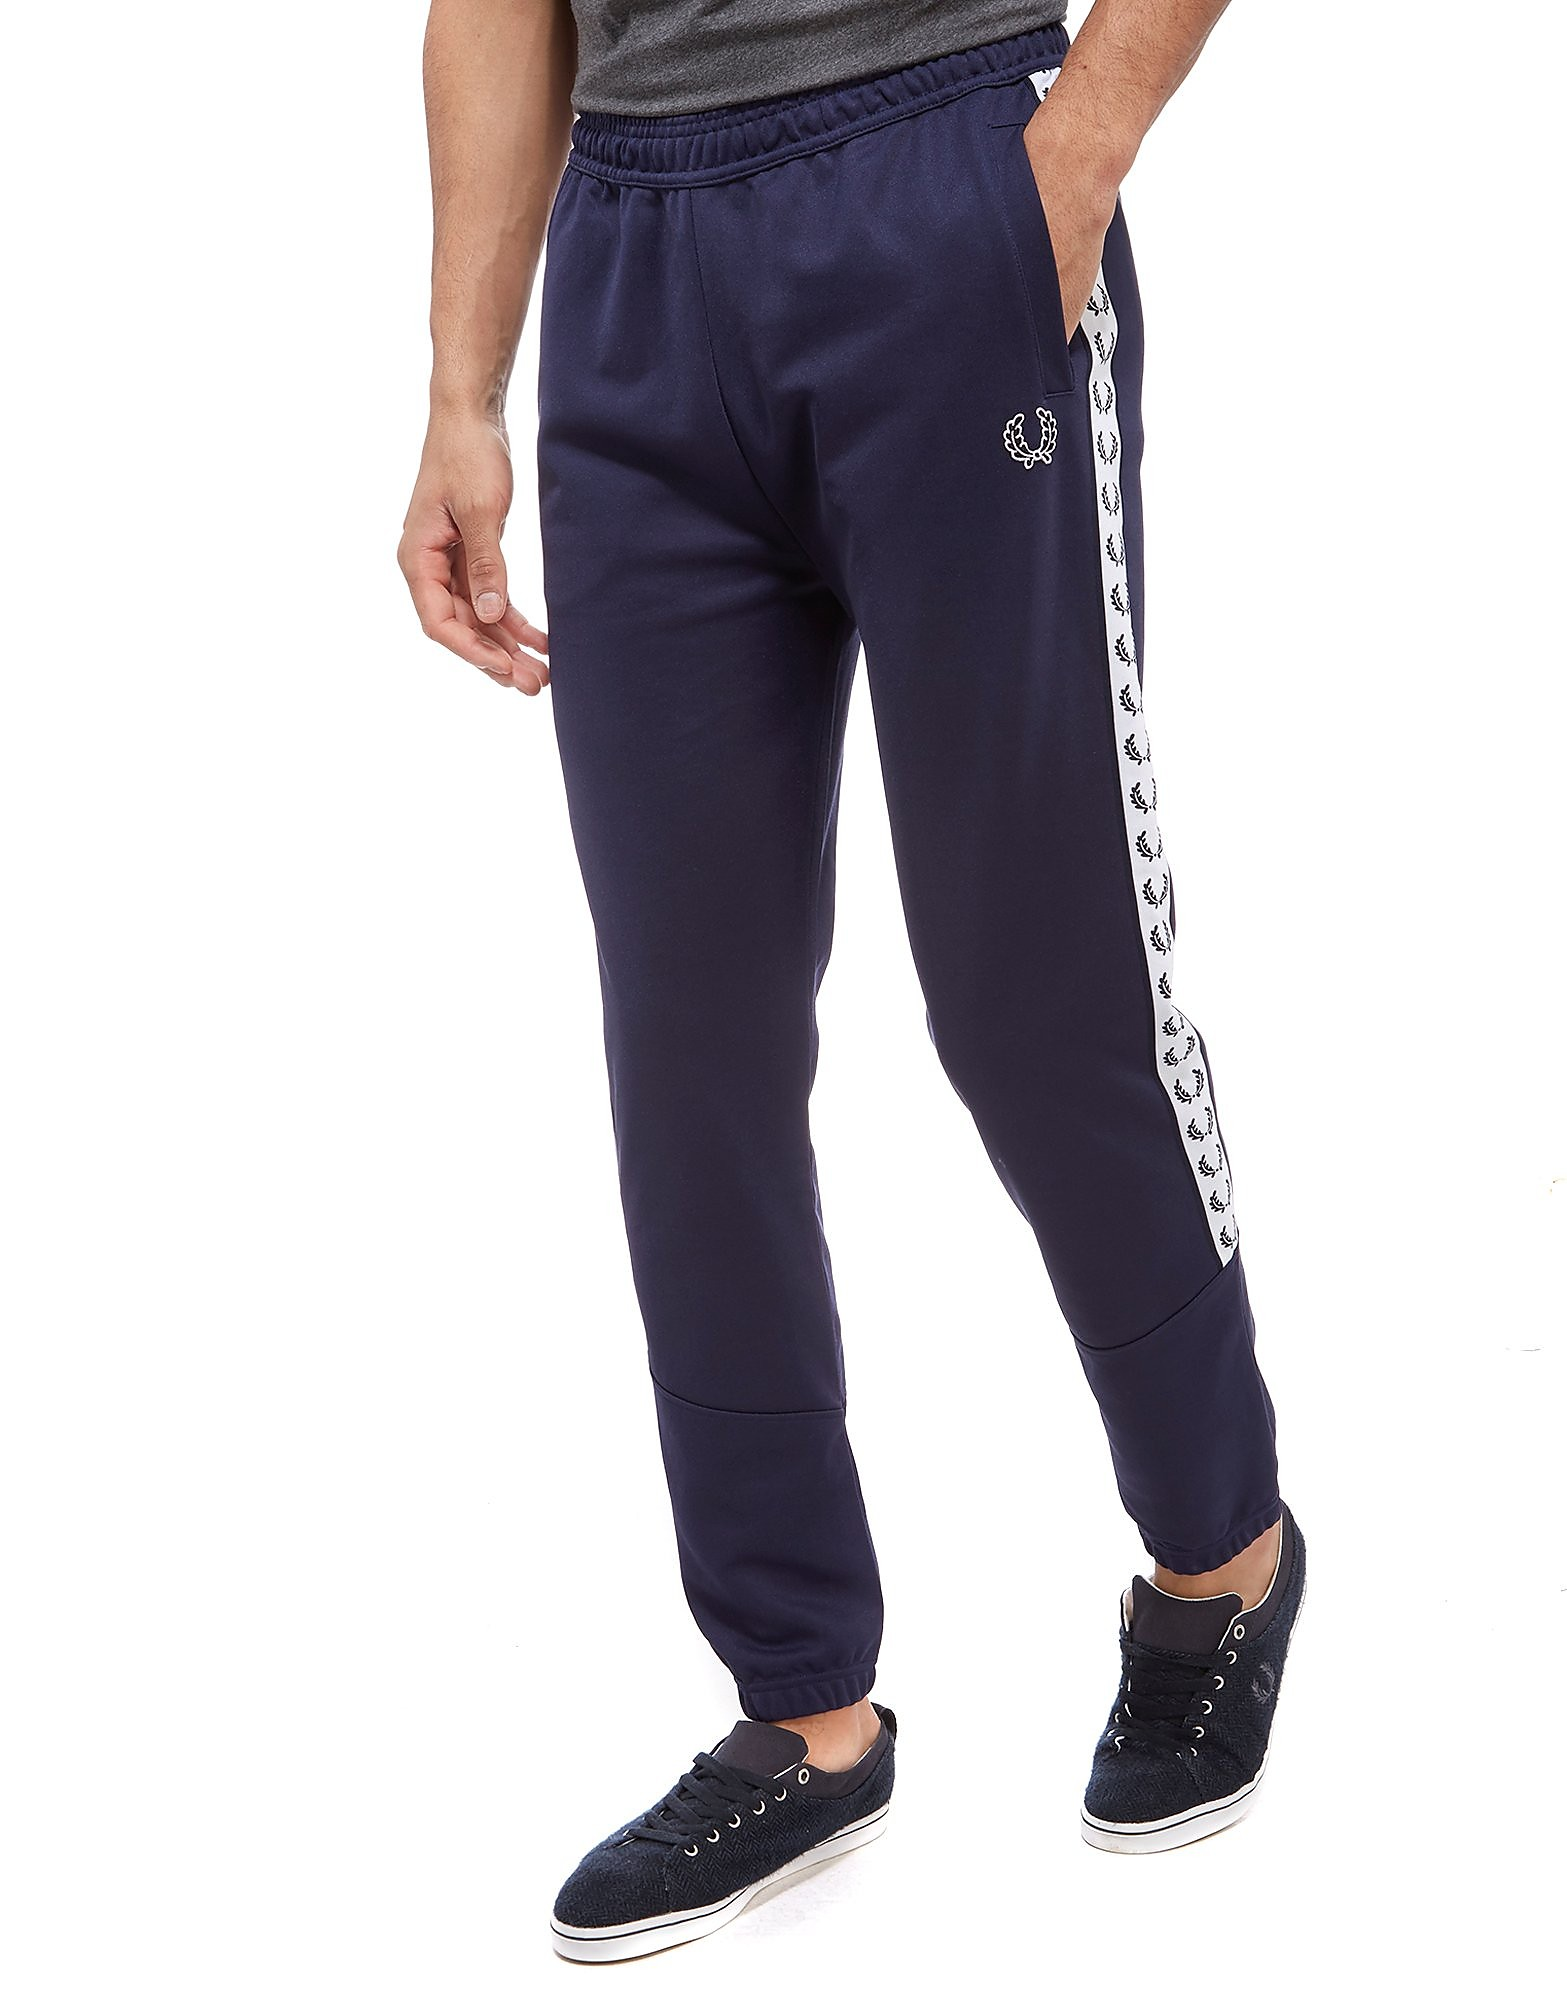 Fred Perry Sports Authentic Tape Track Pants